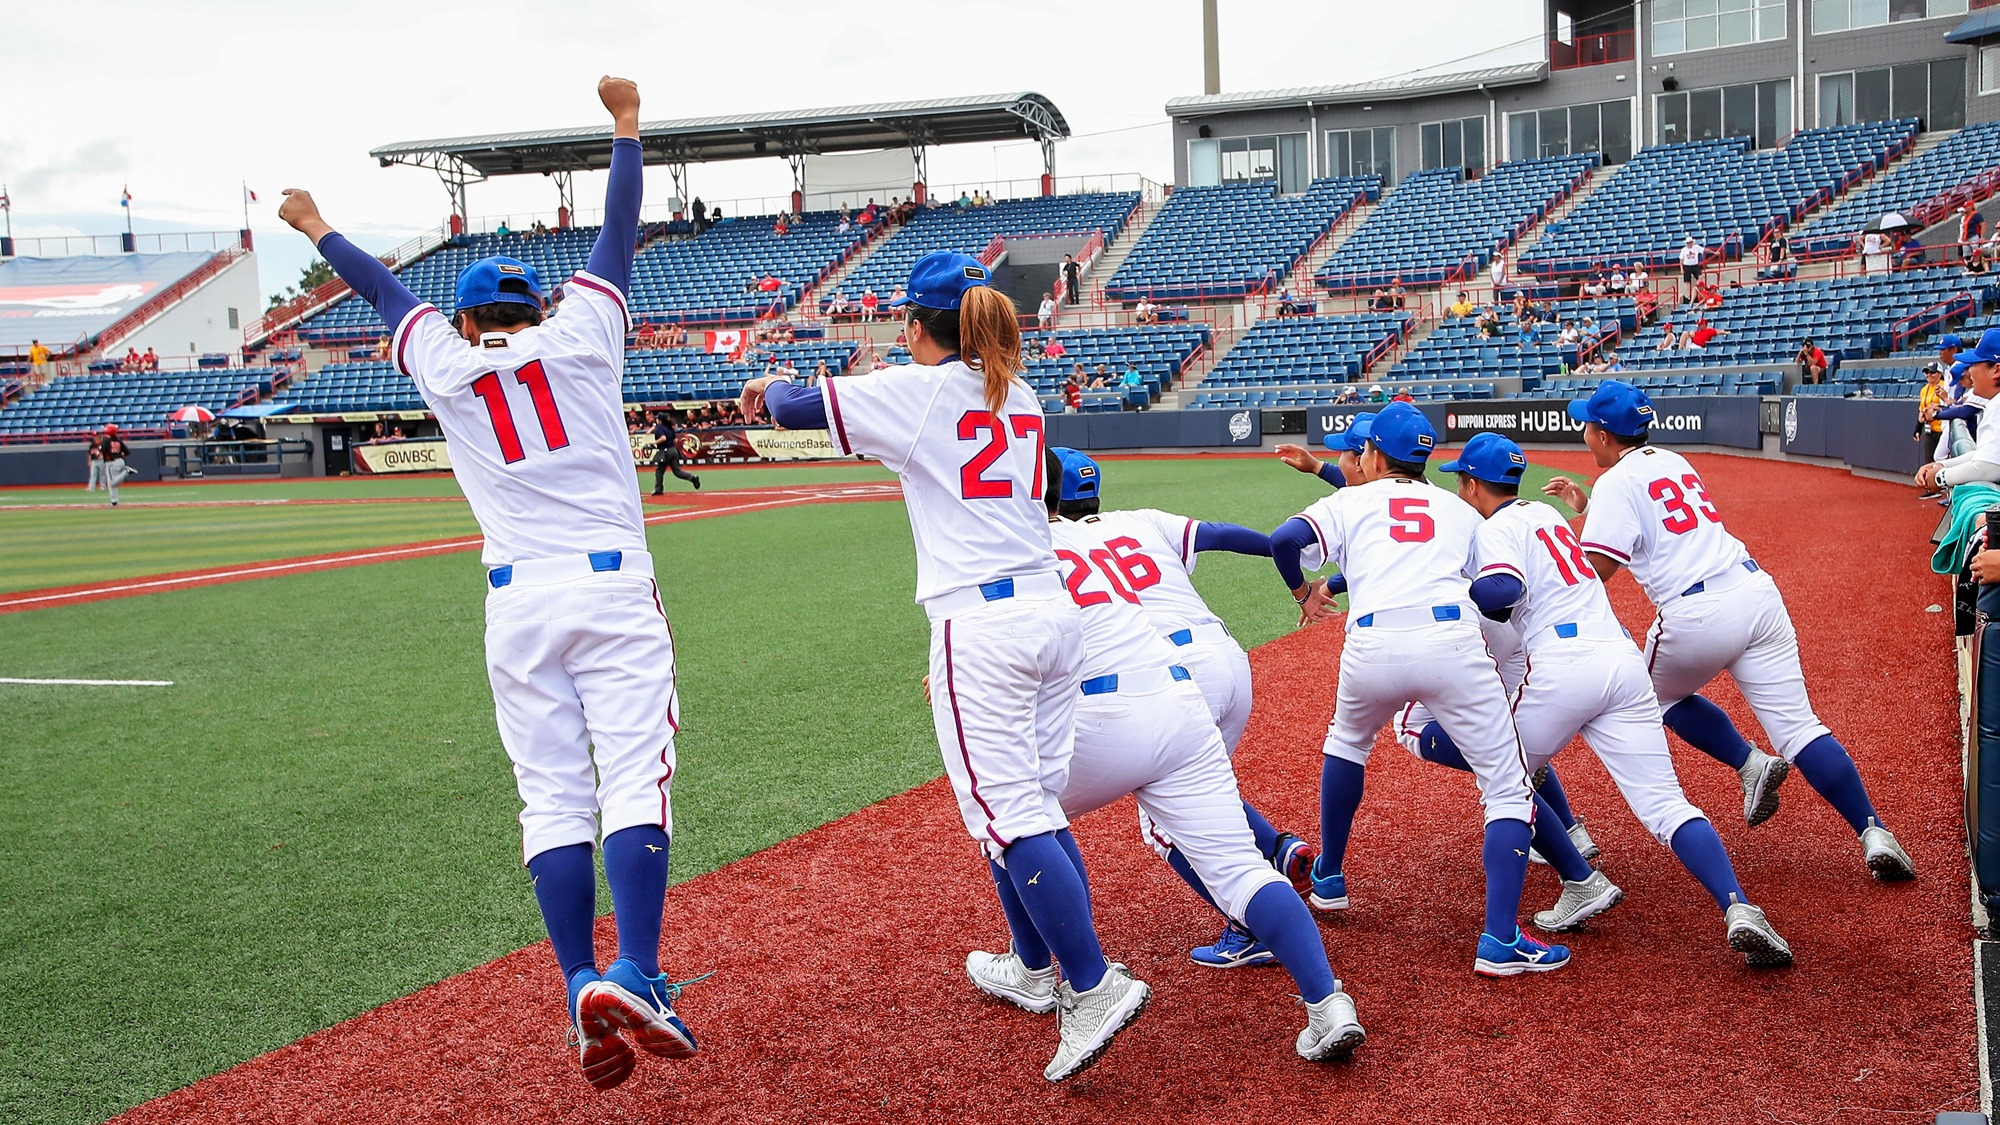 Chinese Taipei dugout flies onto the field after the third out